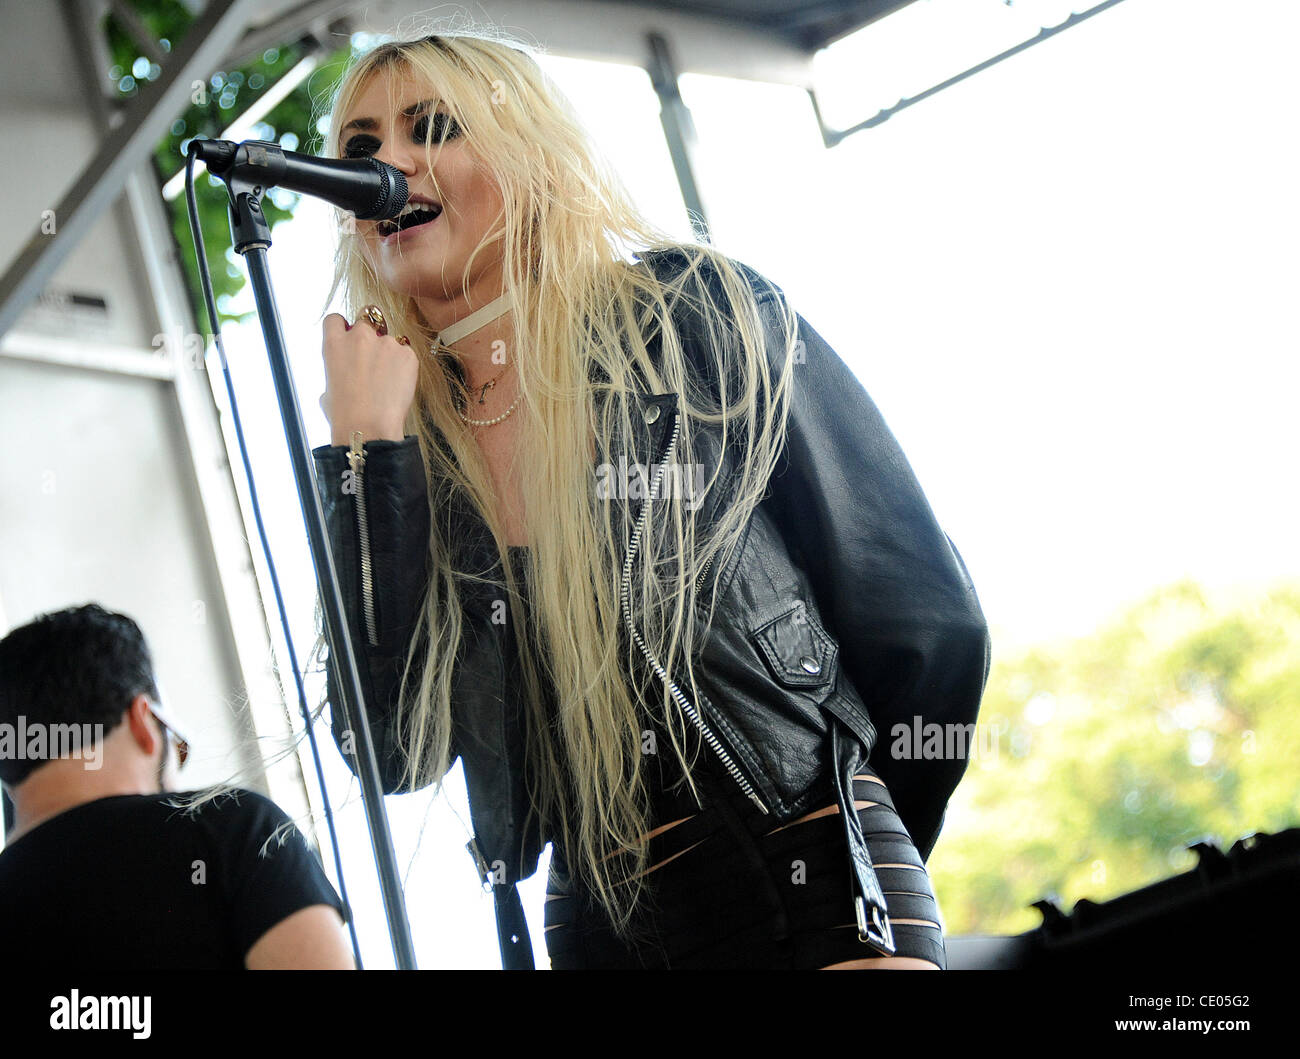 Aug 6, 2011 - Chicago, Illinois; USA - Singer TAYLOR MOMSEN of the band The Pretty Reckless performs live as part - Stock Image